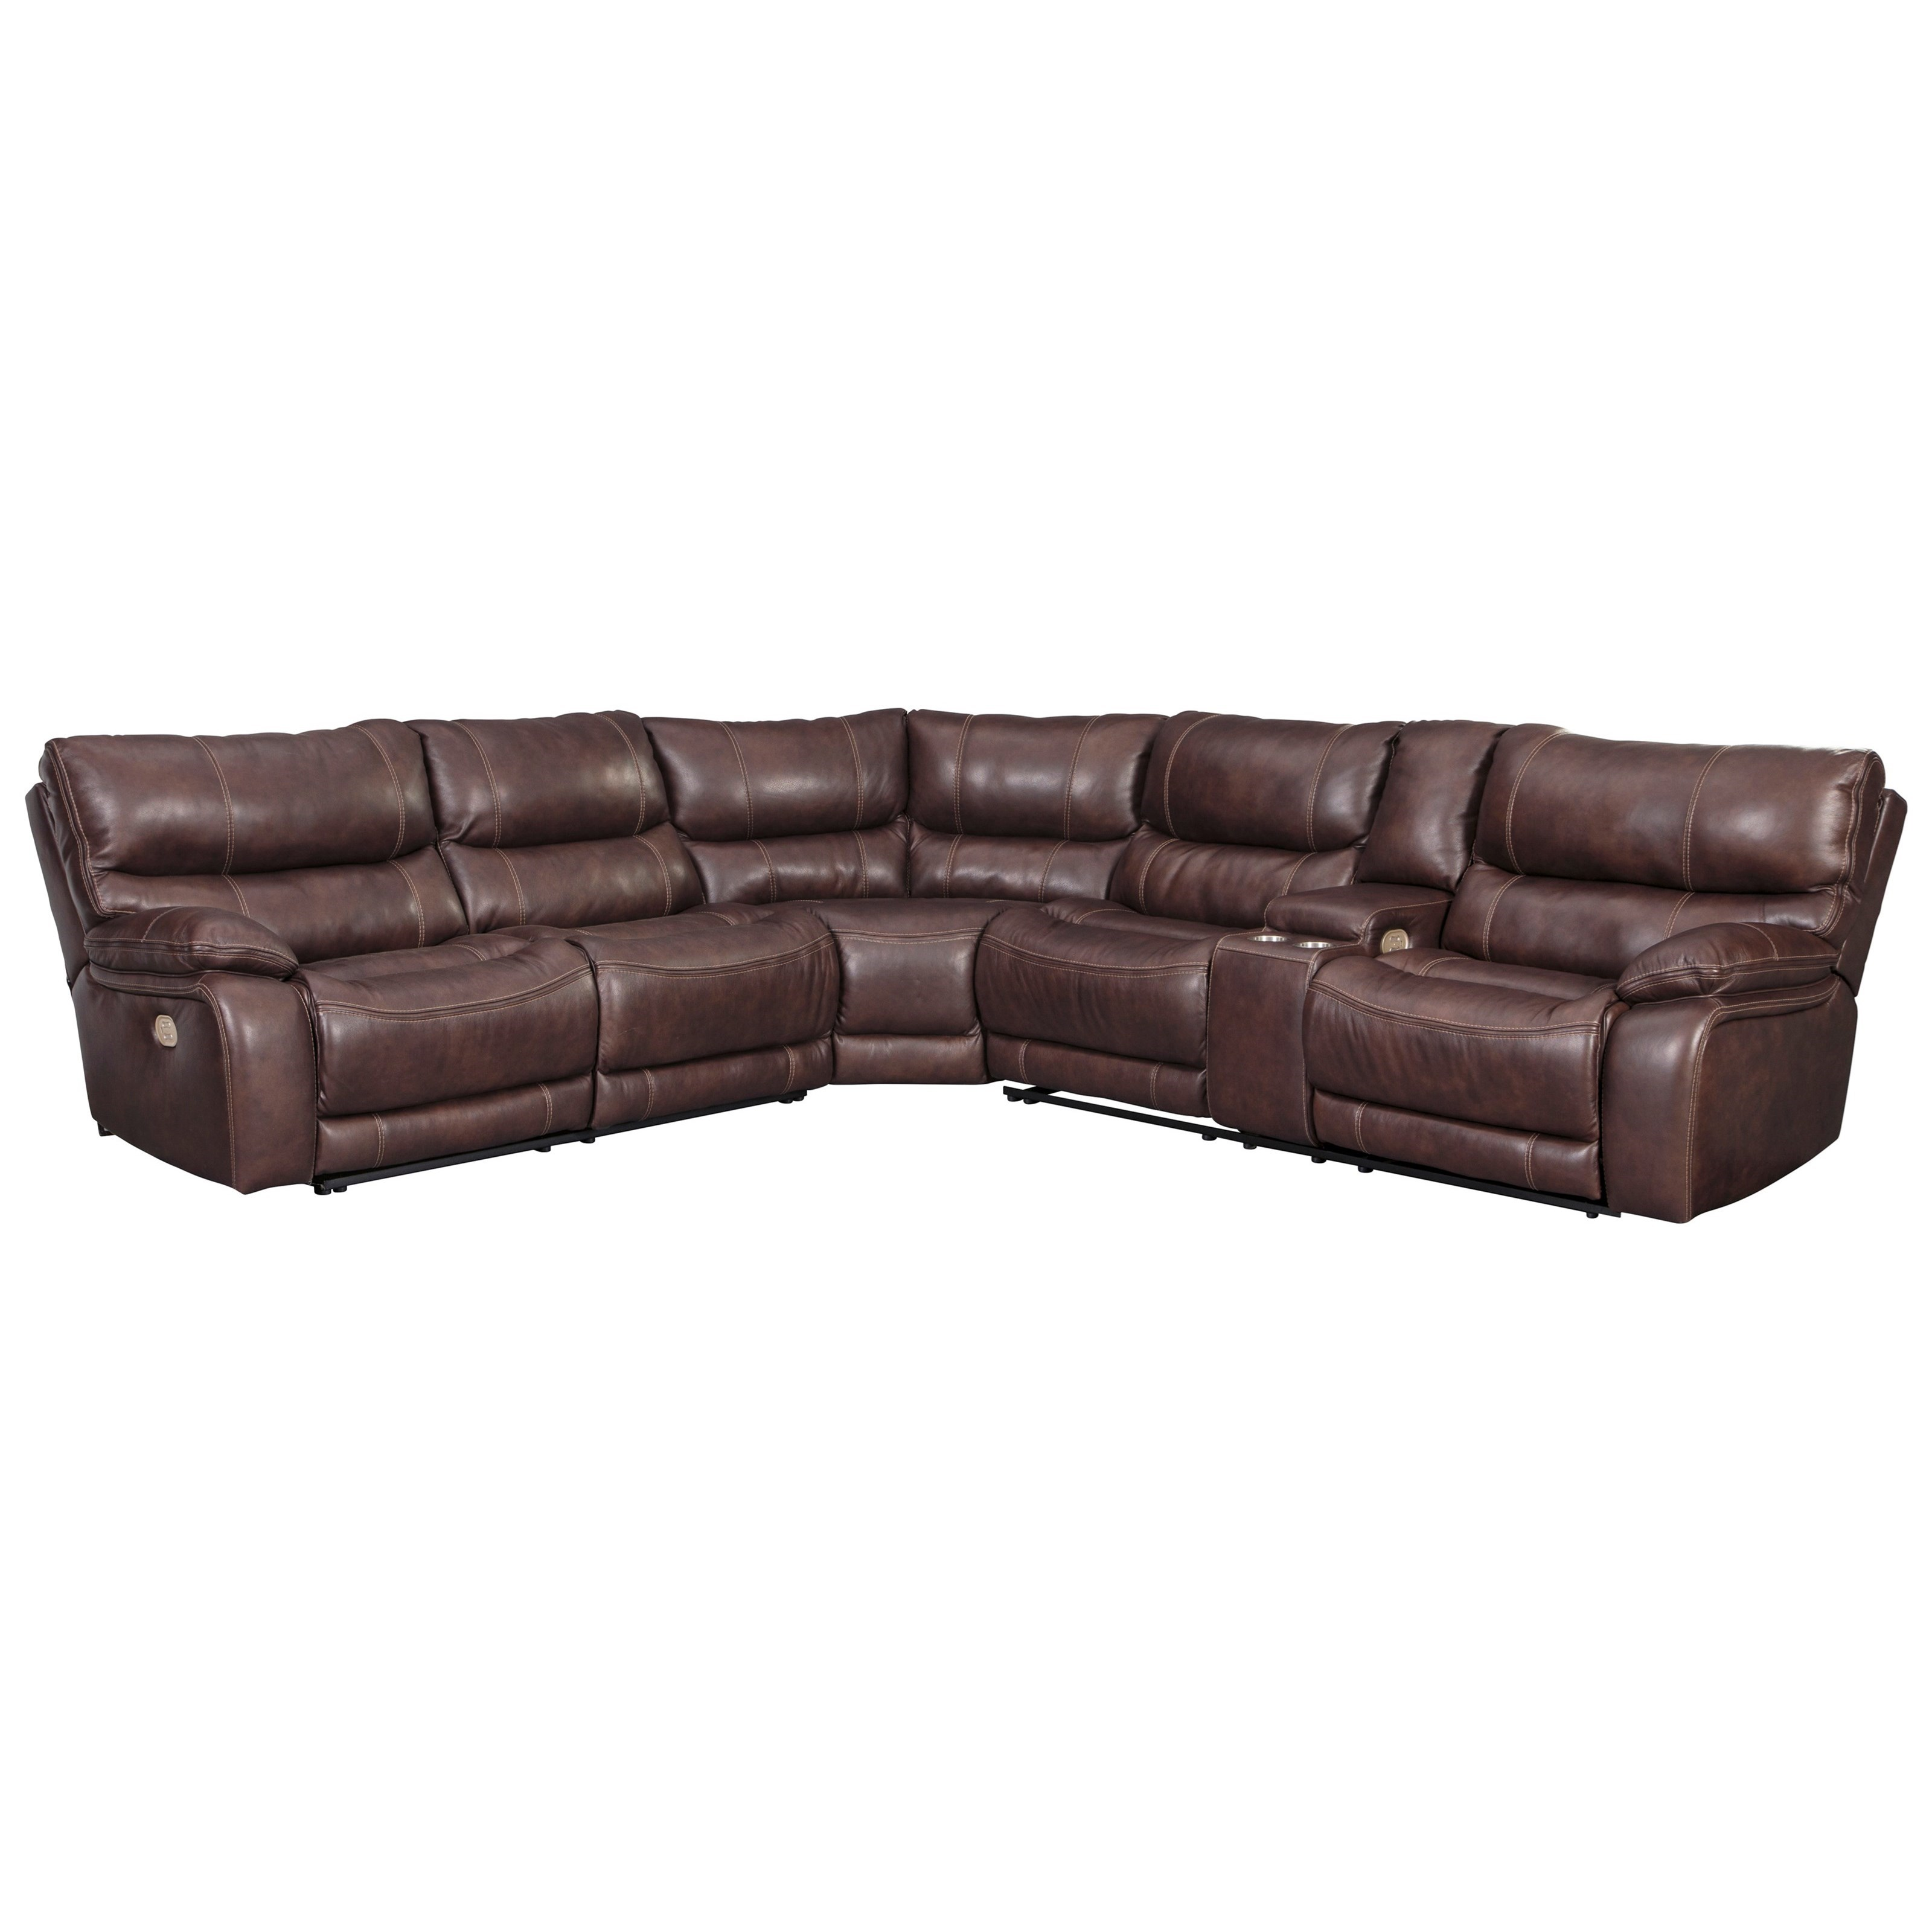 Muirfield 3-Piece Power Reclining Sectional by Benchcraft at Miller Waldrop Furniture and Decor